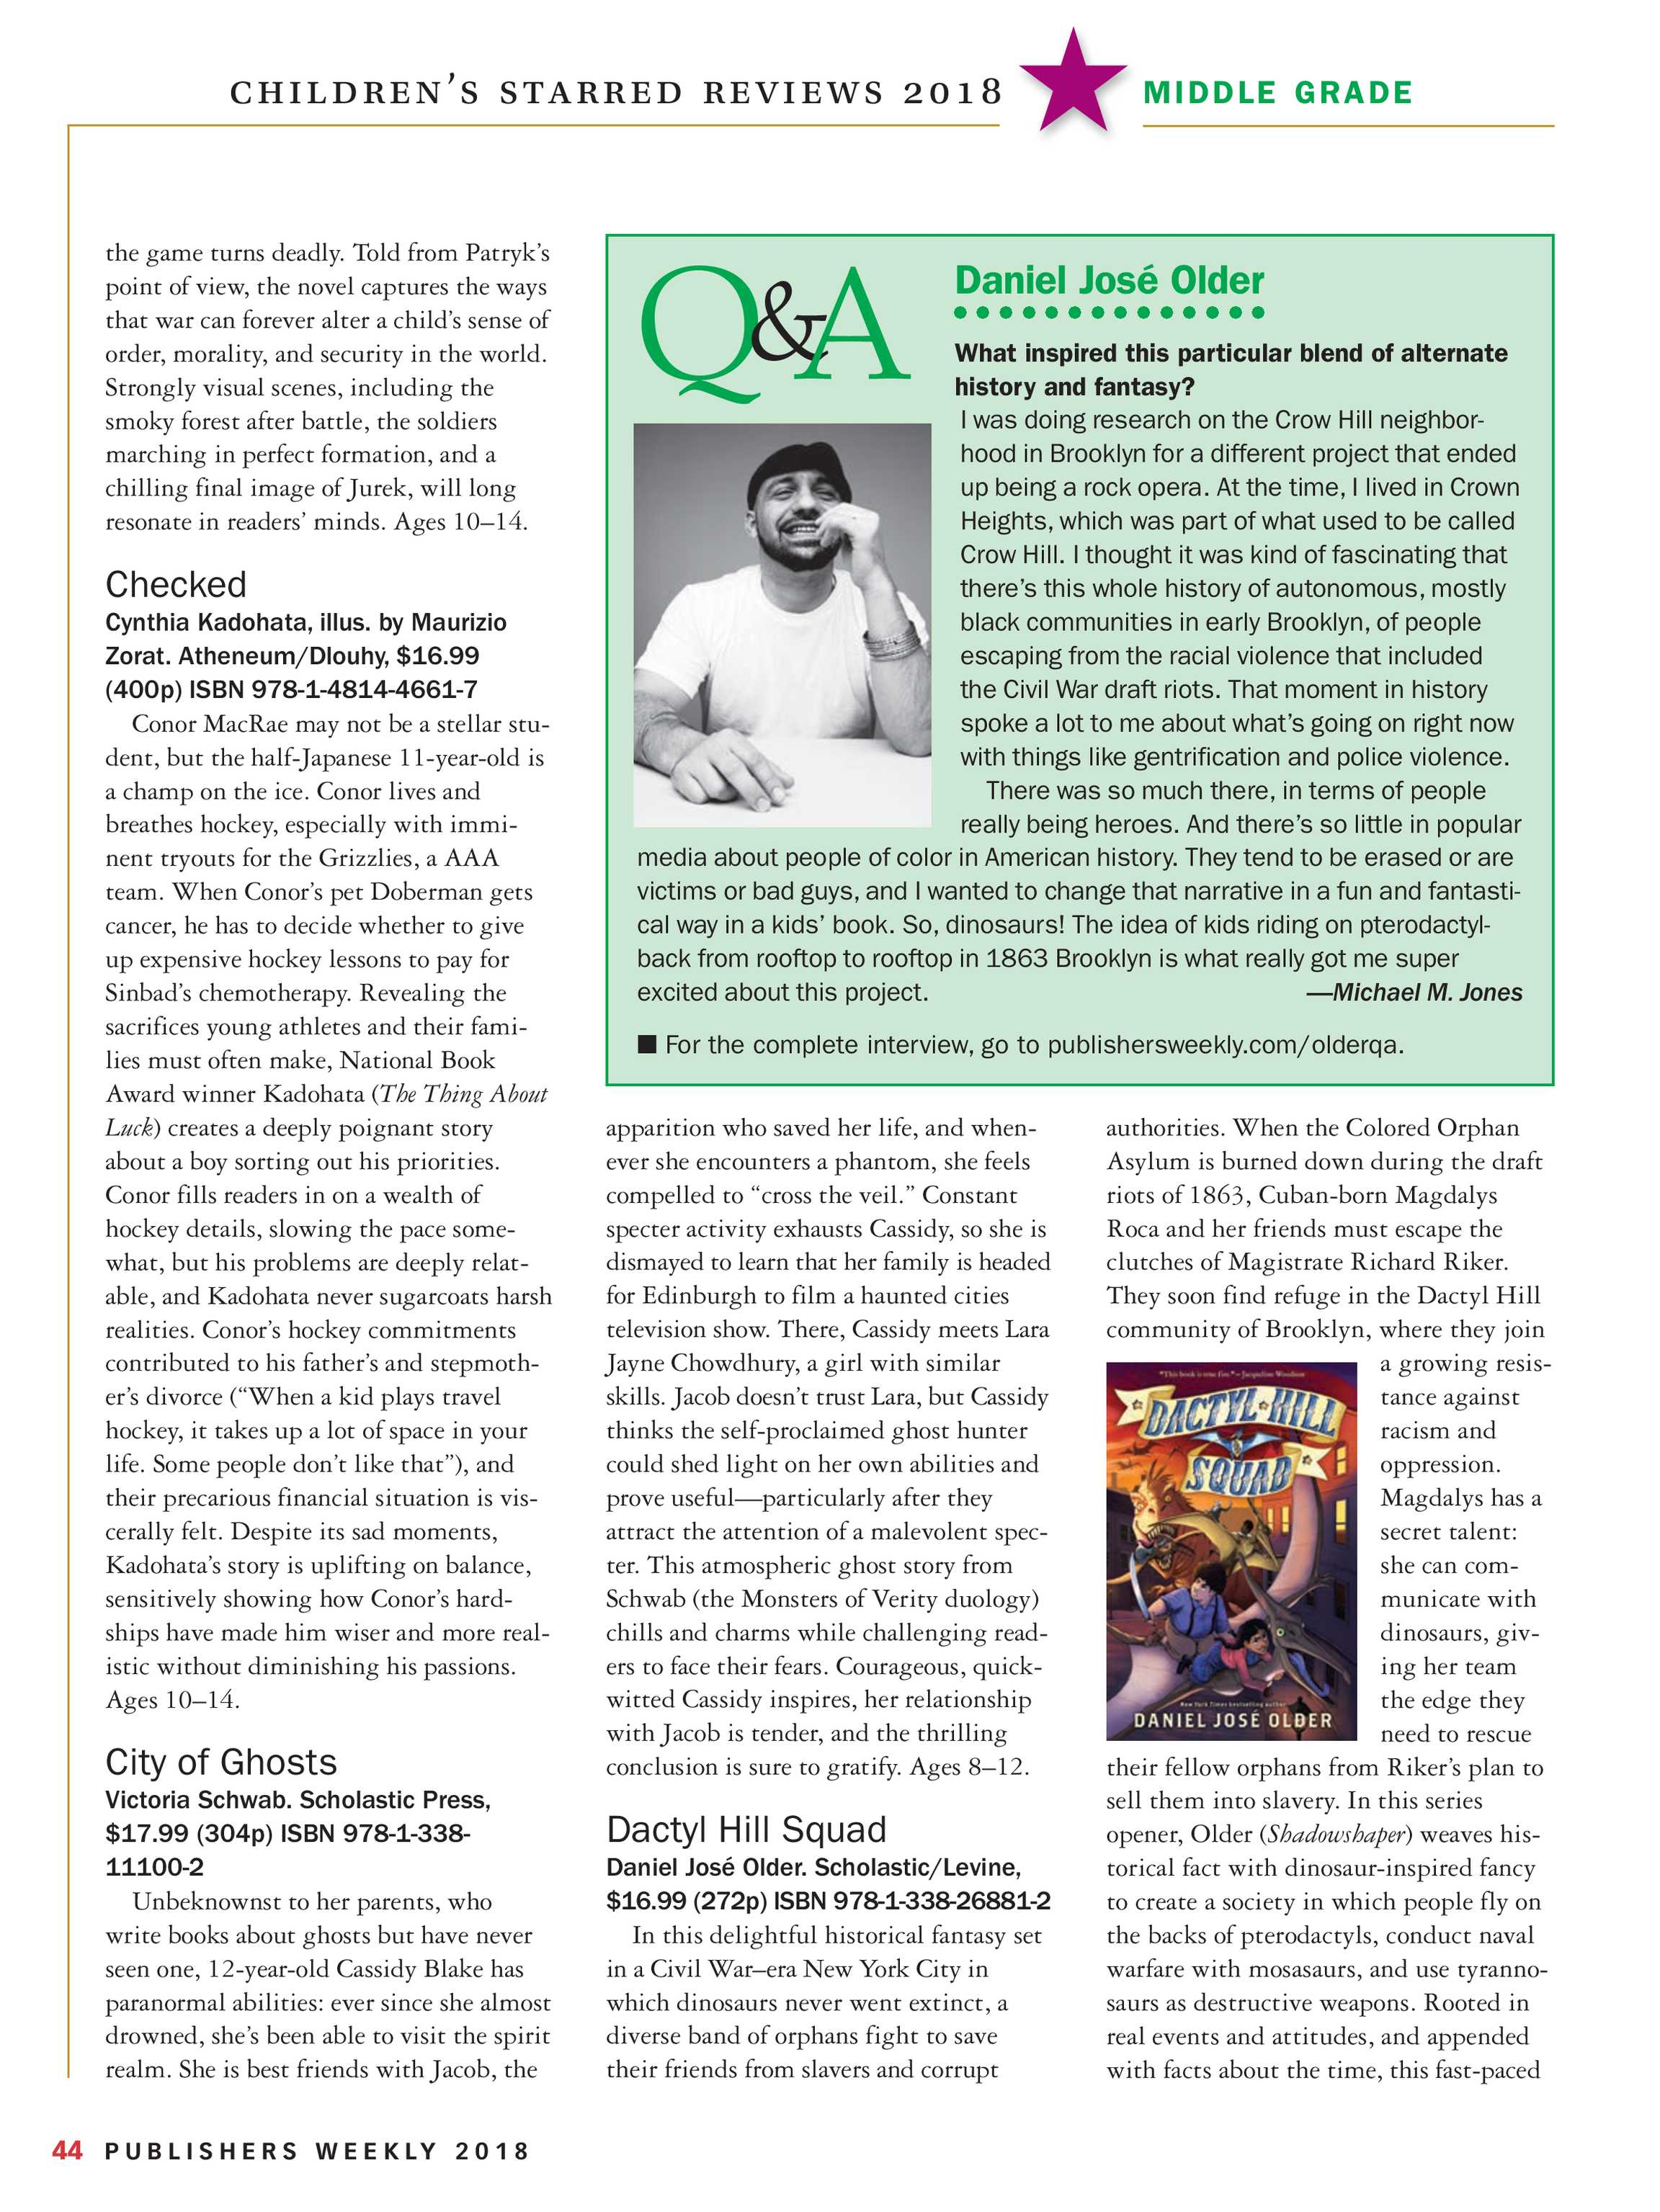 Publishers Weekly - Children's Starred Reviews 2018 - page 43